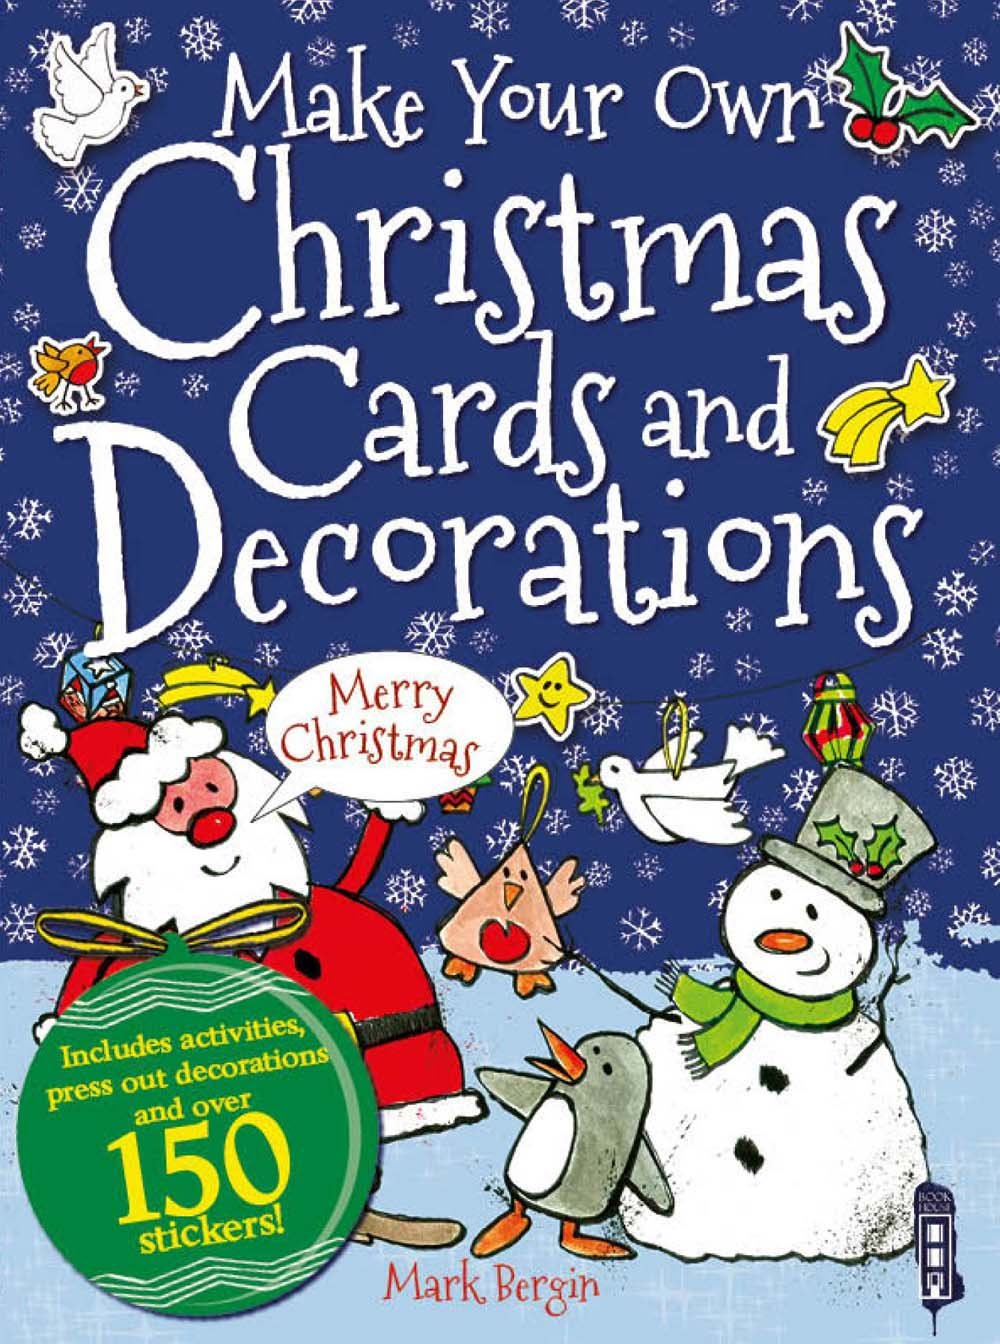 Make Your Own Christmas Cards and Decorations: Mark Bergin ...